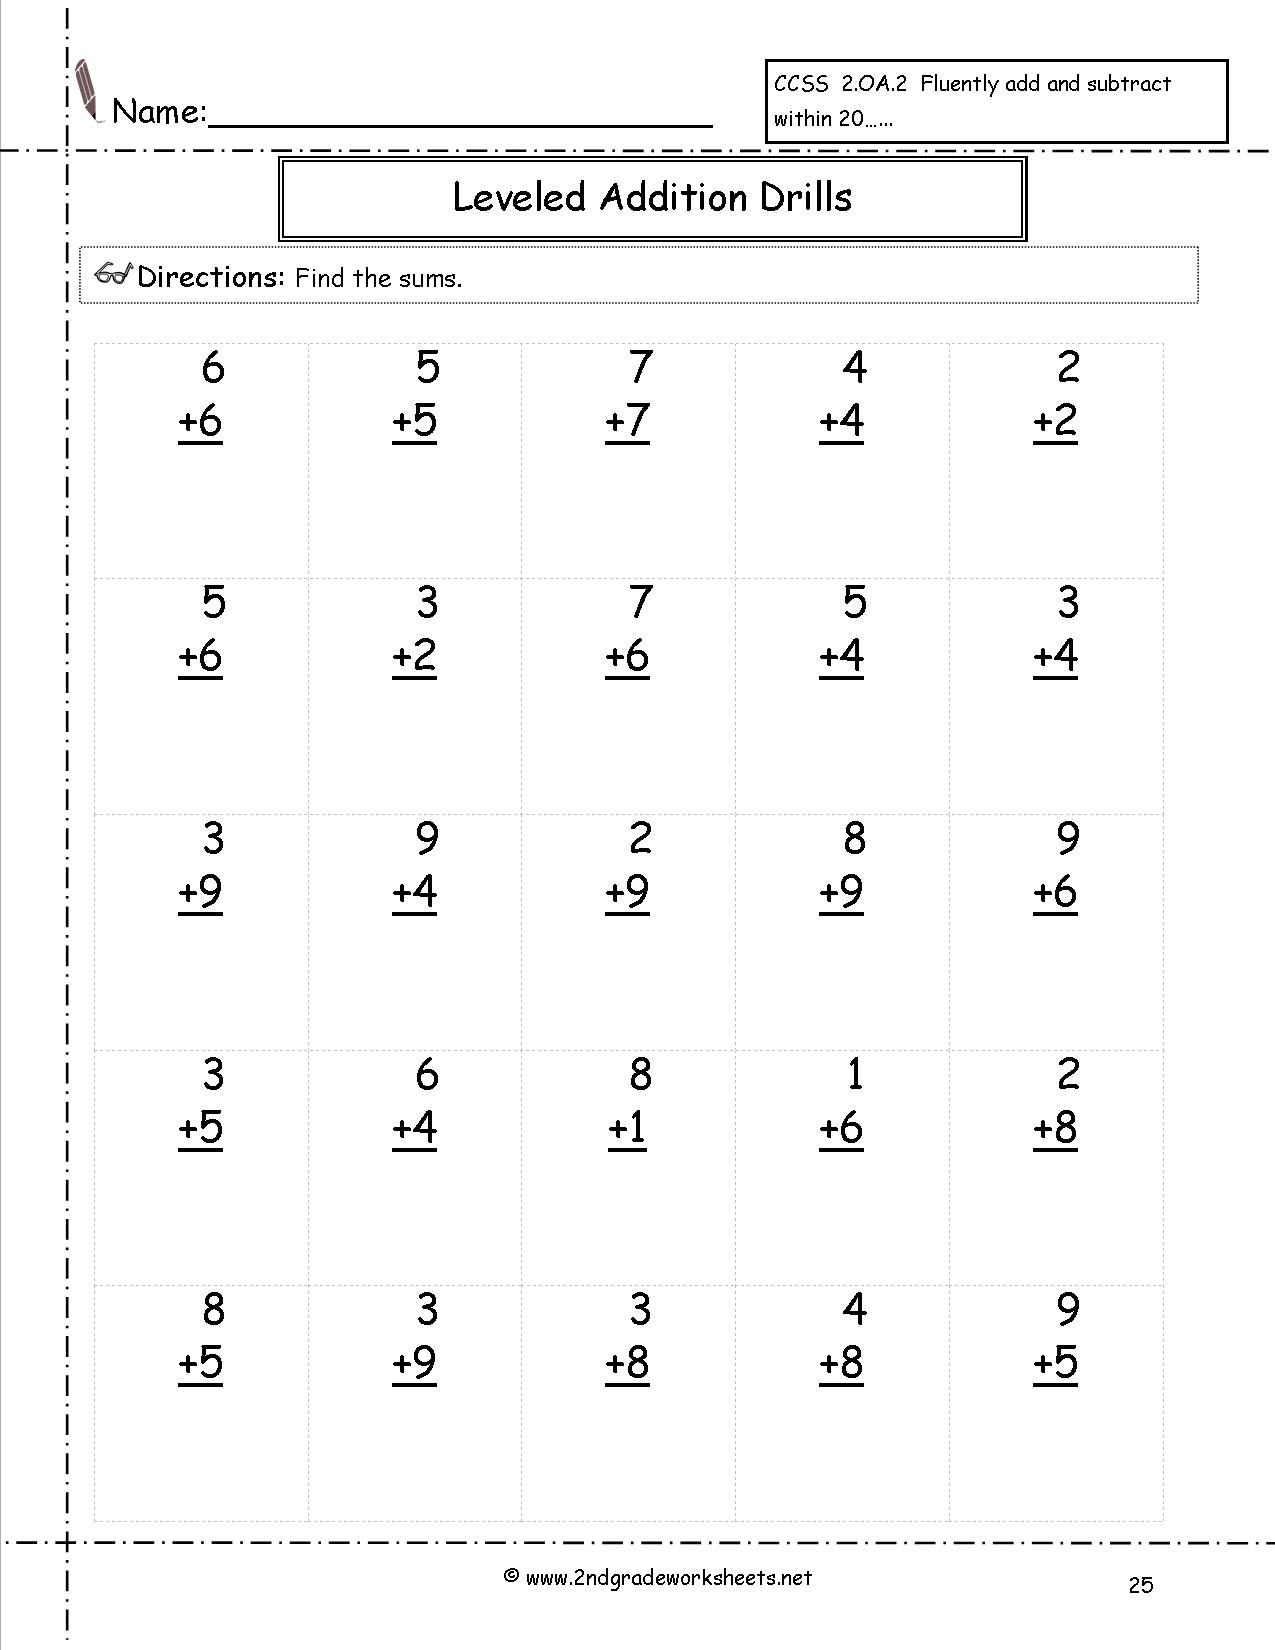 Free Math Worksheets And Printouts | Printable Math Worksheets For Grade 2